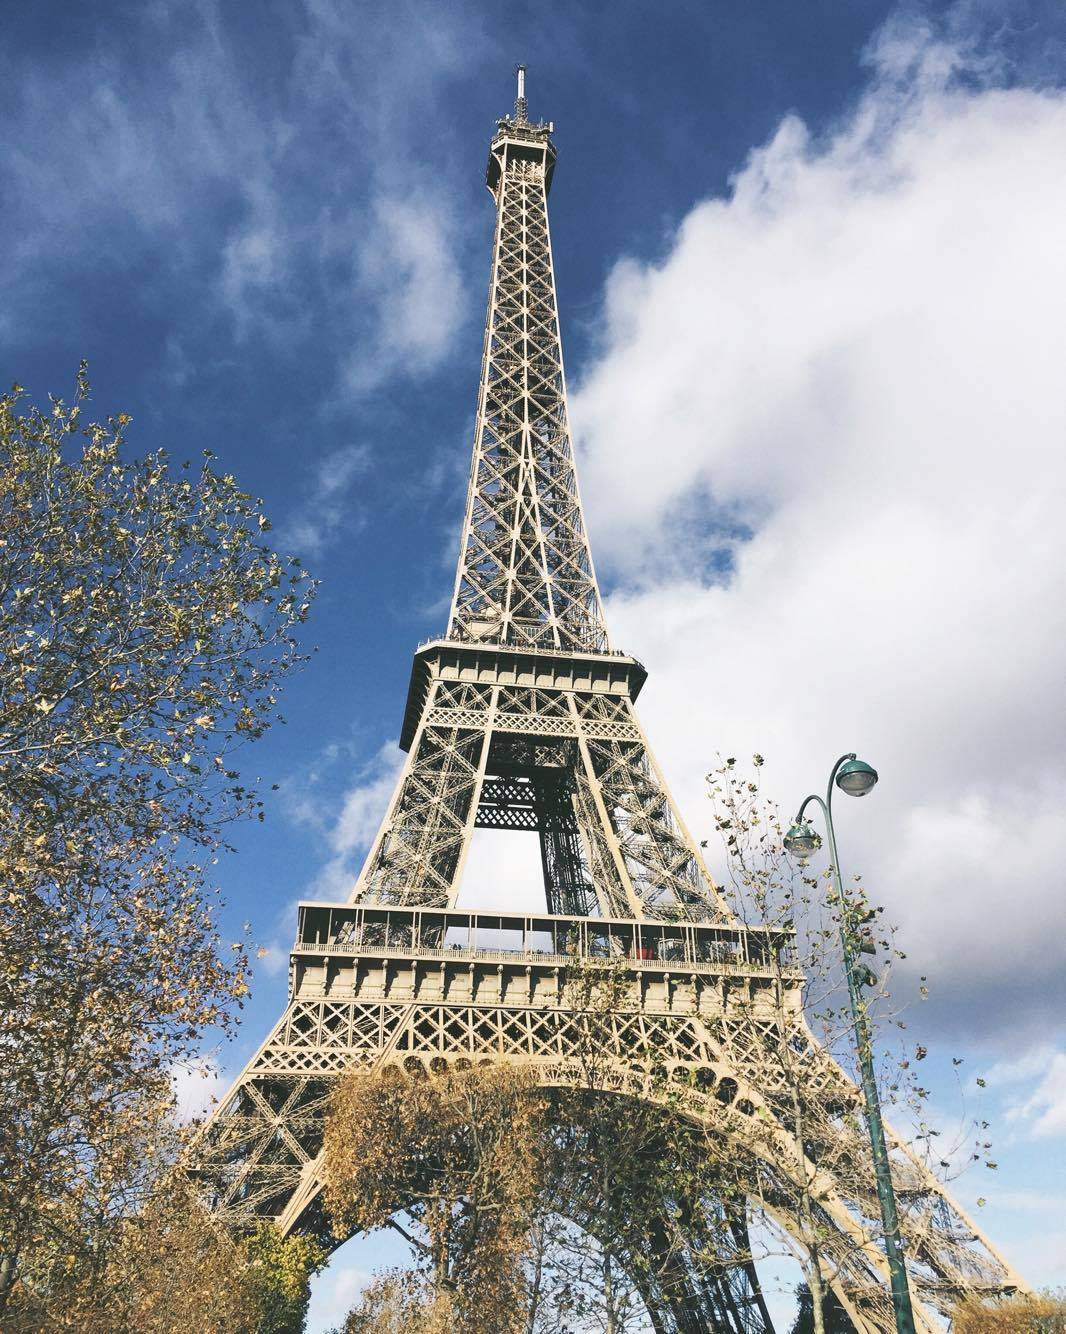 Eiffel Tower, birthday weekend, birthday weekend paris, birthday weekend away, birthday weekend ideas